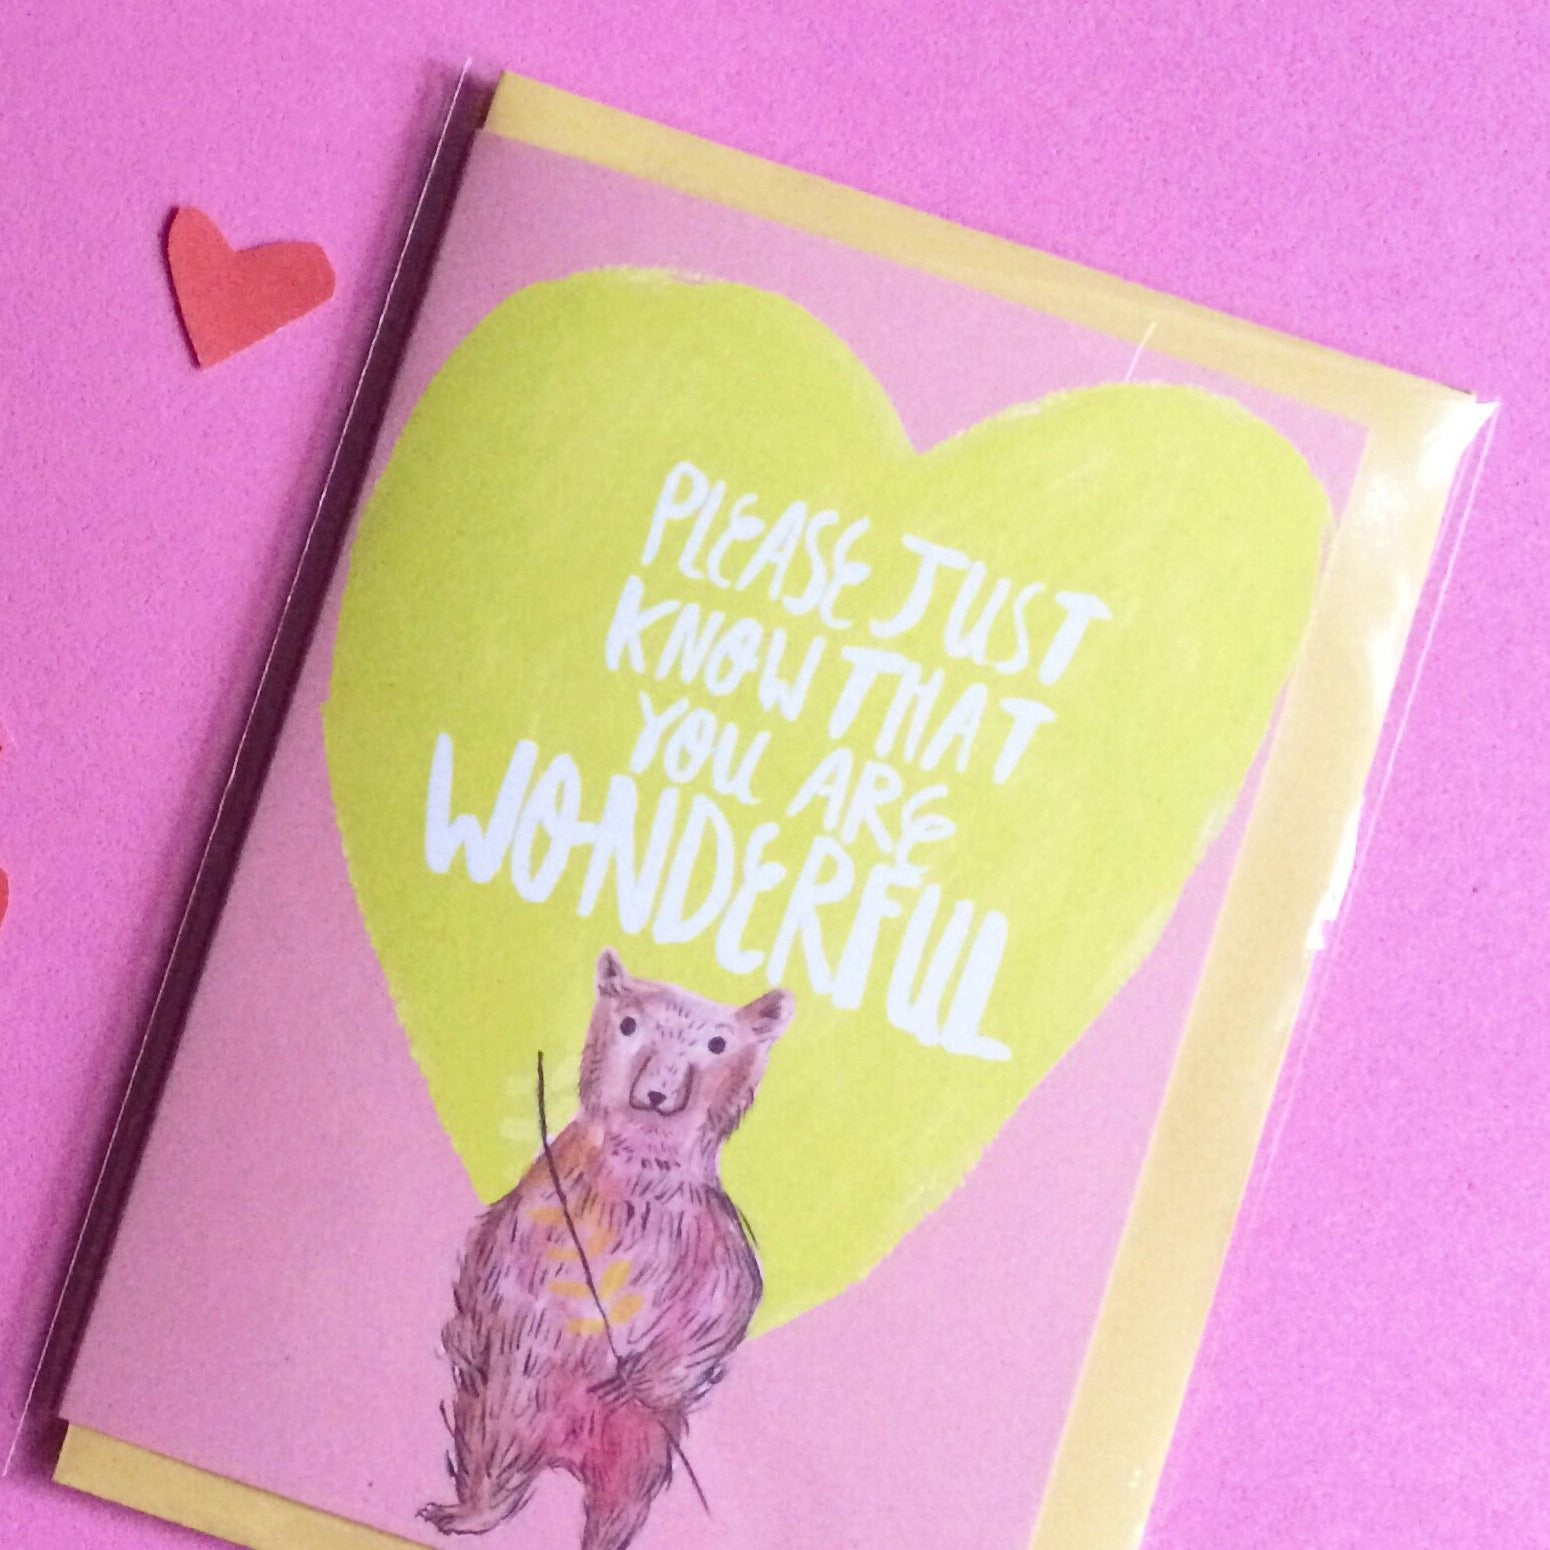 "A6 card with a yellow envelope. It features a watercolour and ink illustration of a cute brown bear holding a twig with yellow leaves. Above the bear is a yellow heart with white lettering that reads ""PLEASE JUST KNOW THAT YOU ARE WONDERFUL"". The background of the artwork is pink."